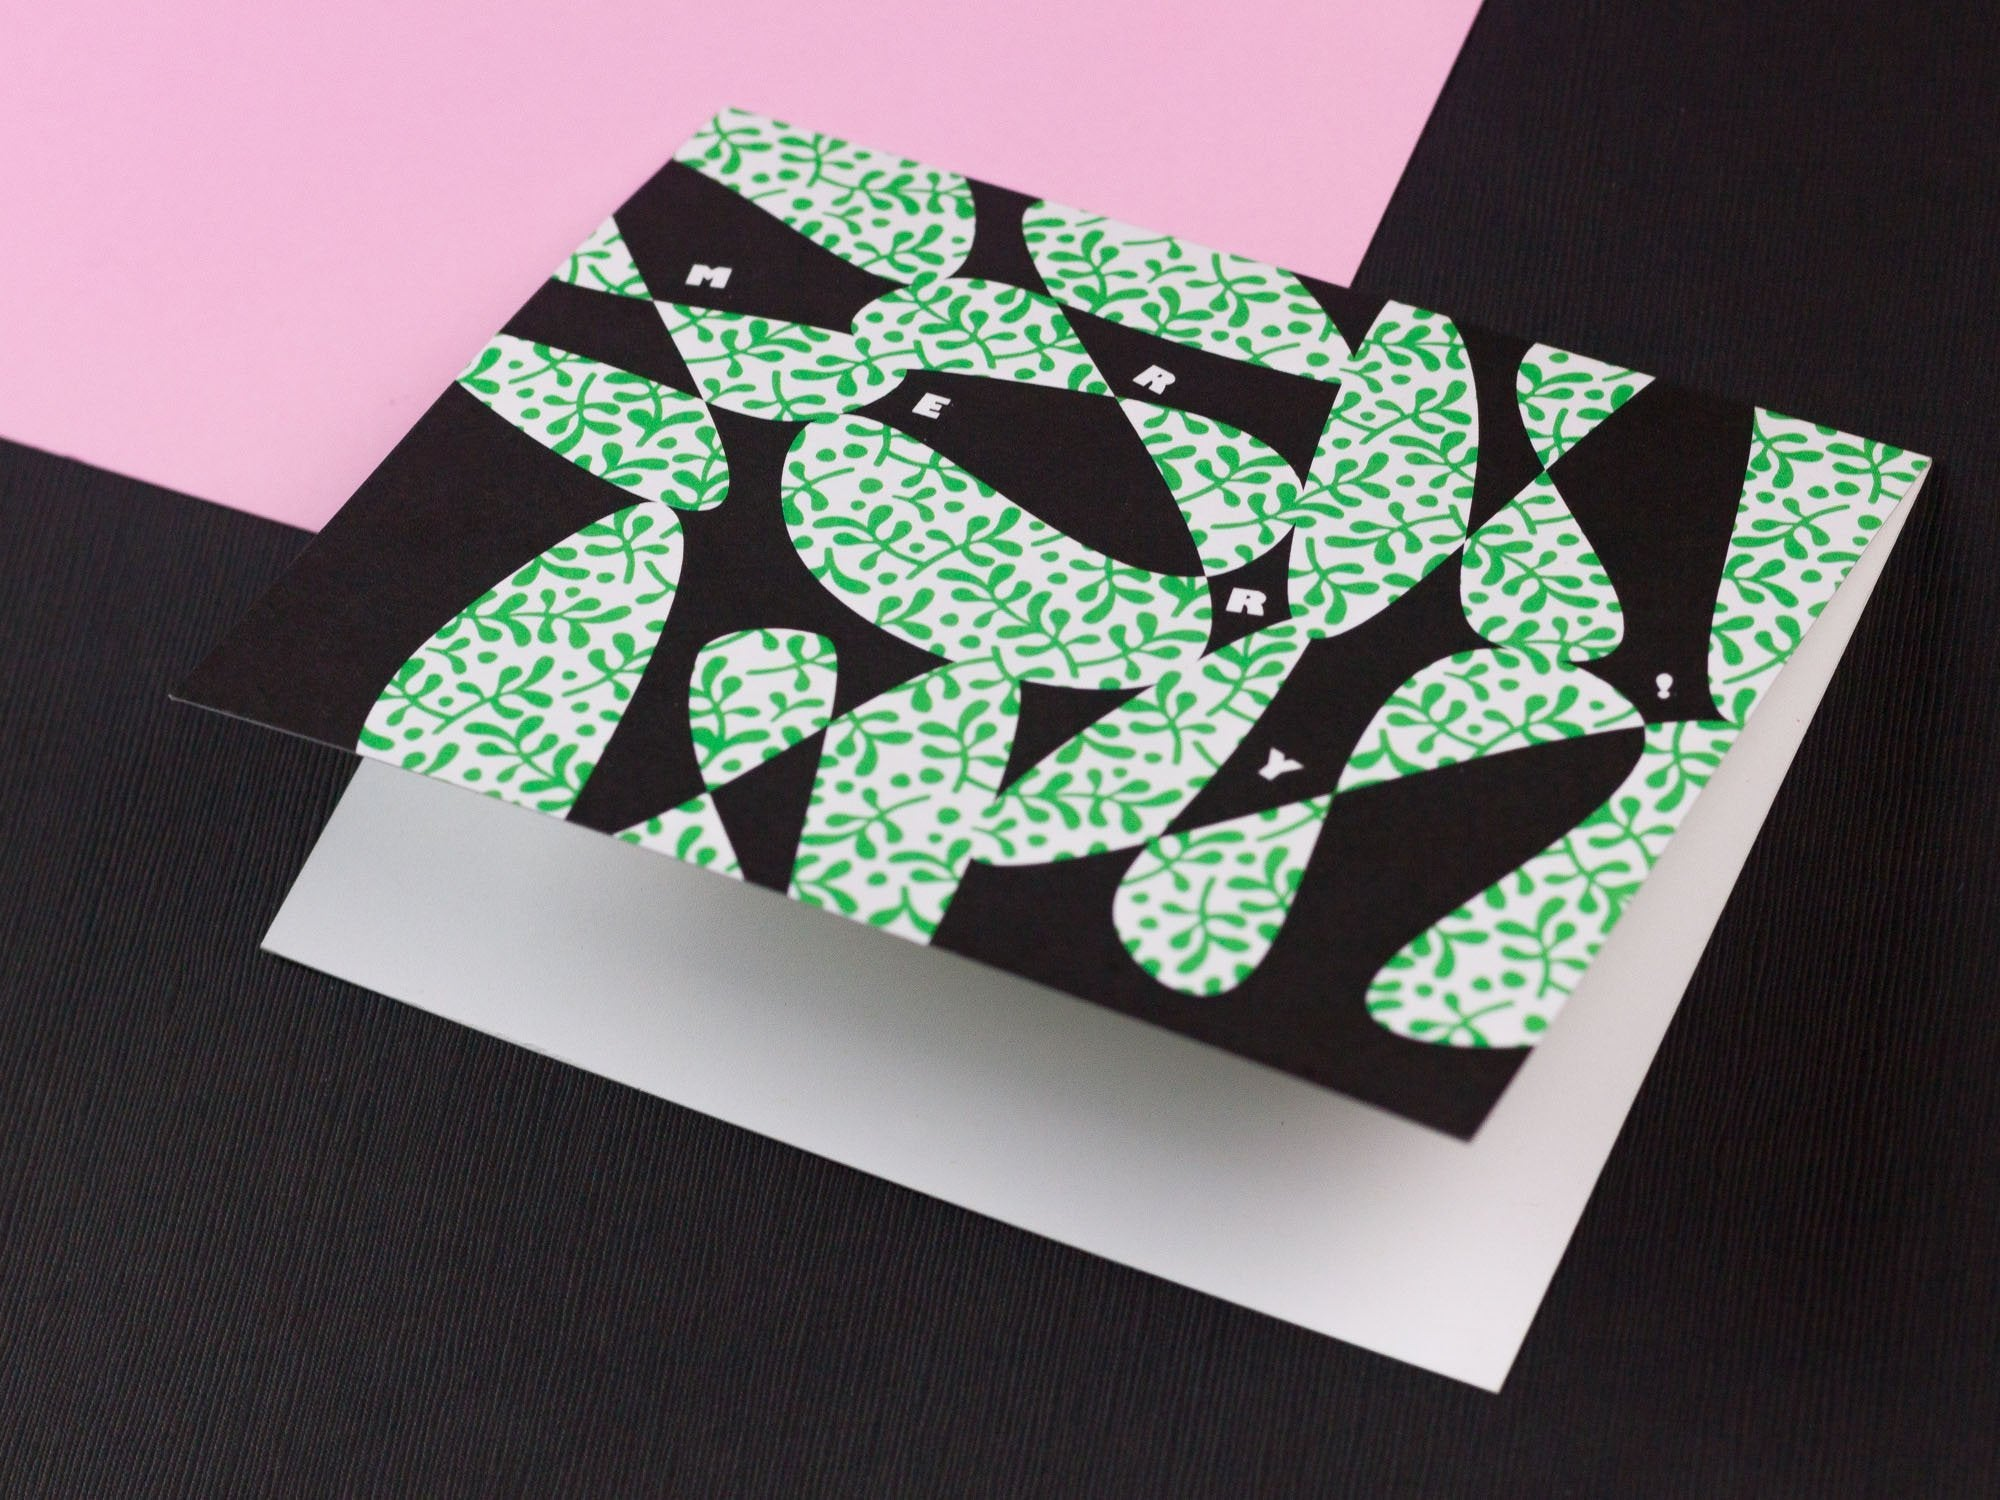 Merry abstract vines pattern mistletoe Christmas holiday card. Designed by @mydarlin_bk